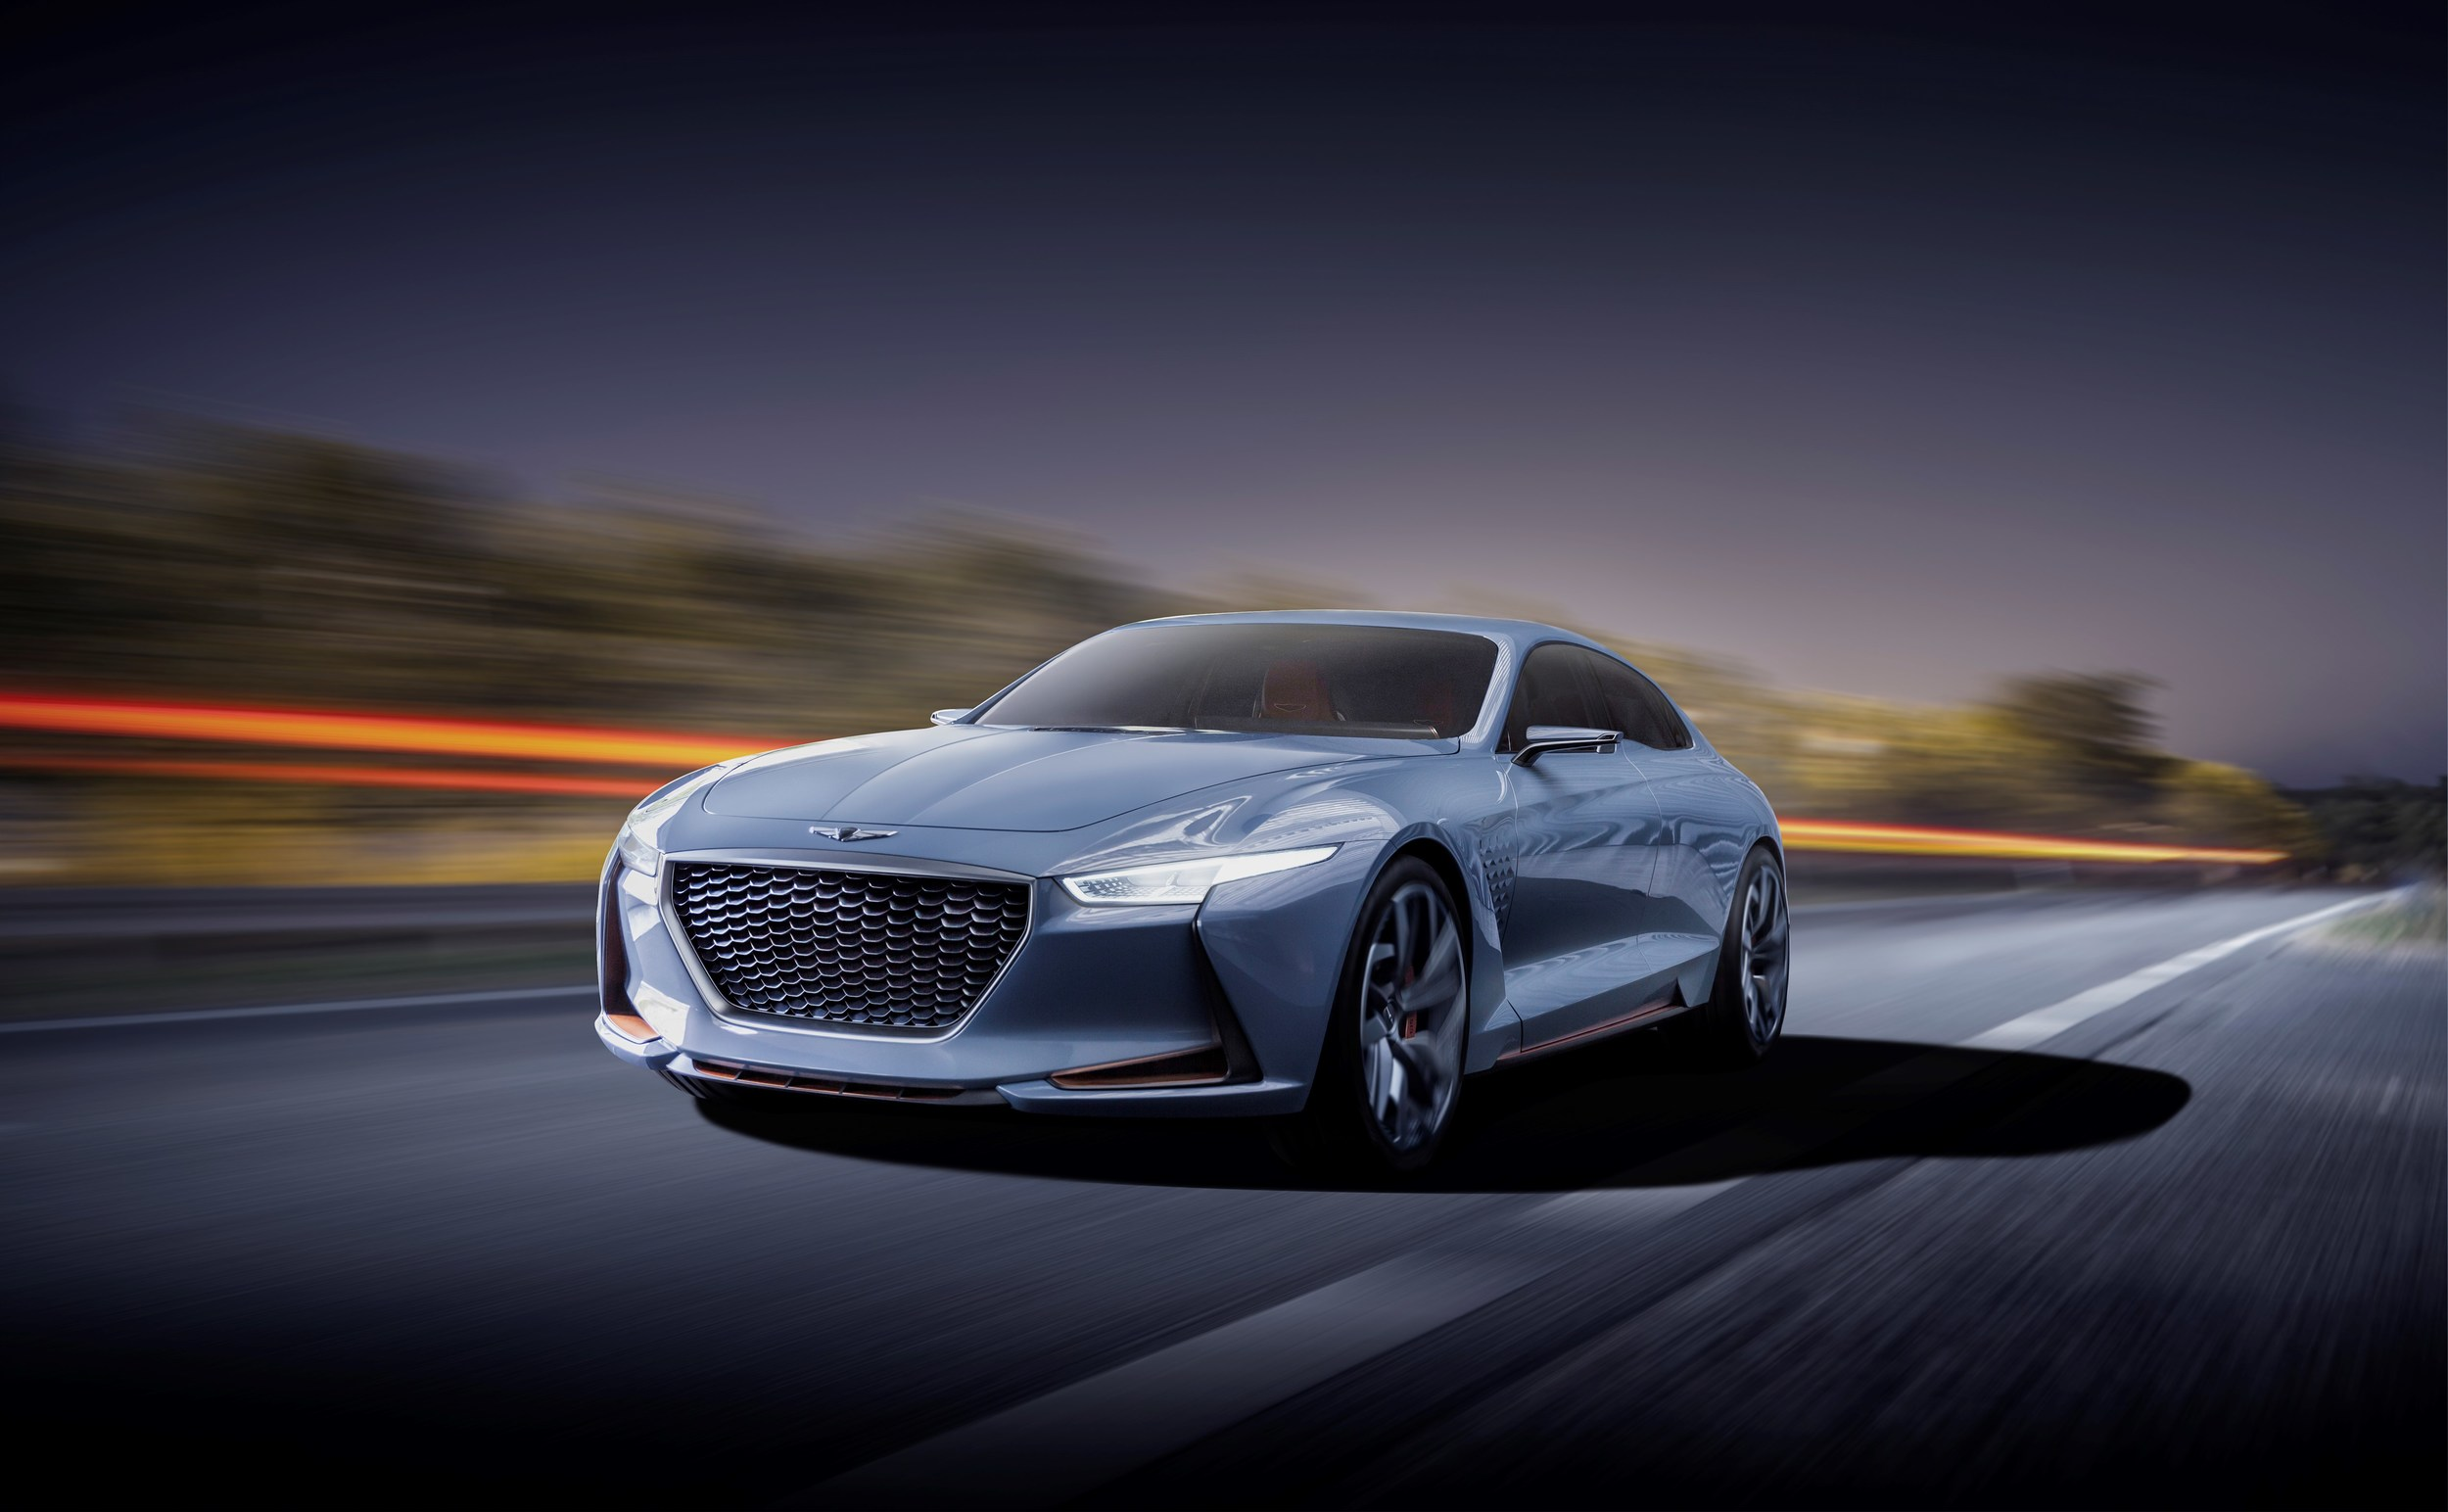 Genesis Motors Confirms G70 Sedan G70 Coupe Two Luxury